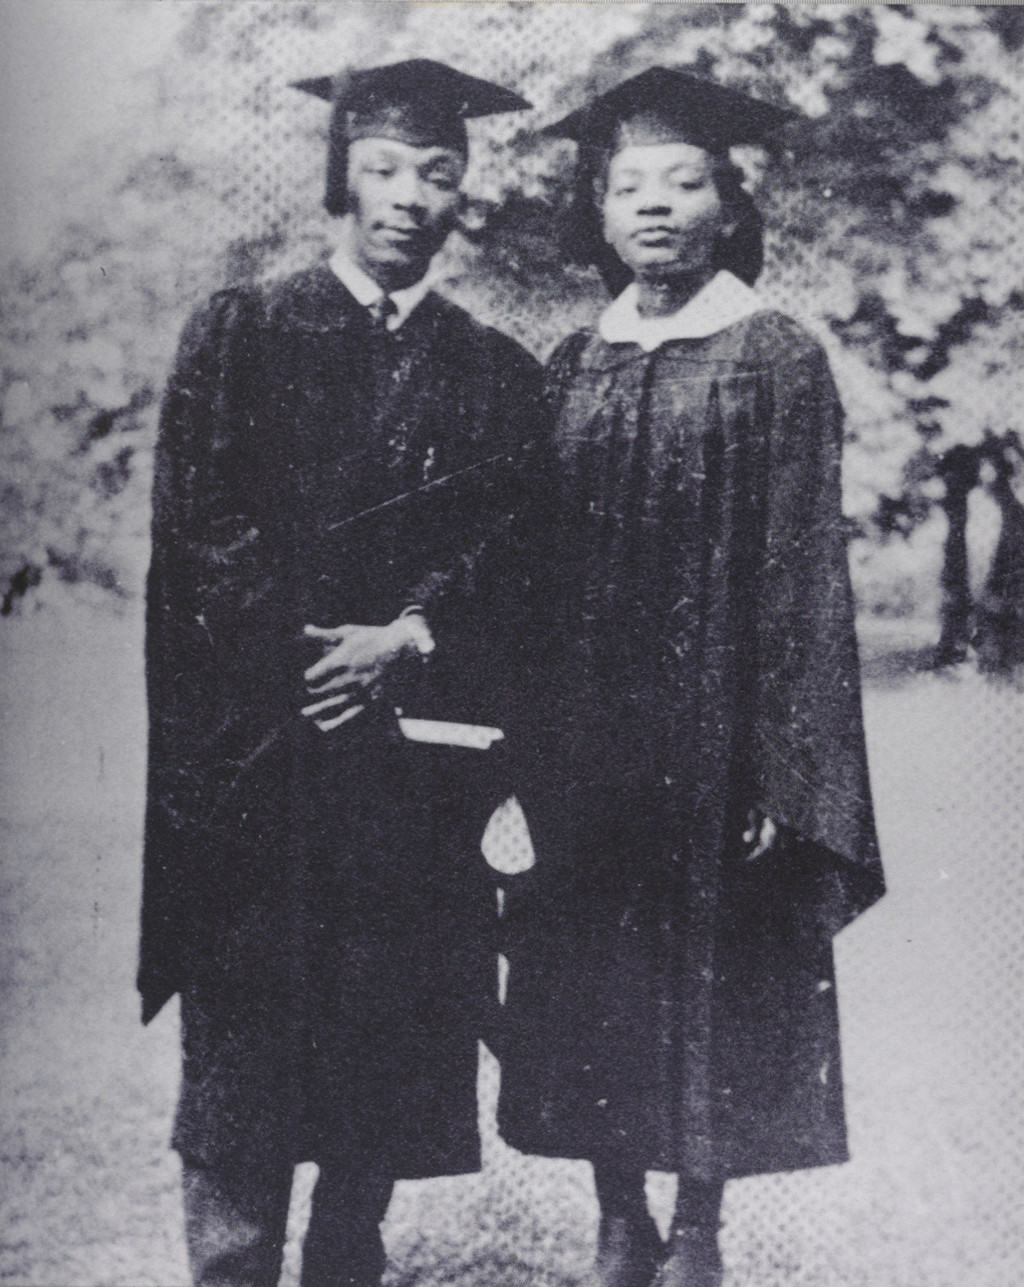 Picture from Dr. King's graduation from Morehouse. He enrolled at Morehouse College in 1944 when he was just 15 years old.